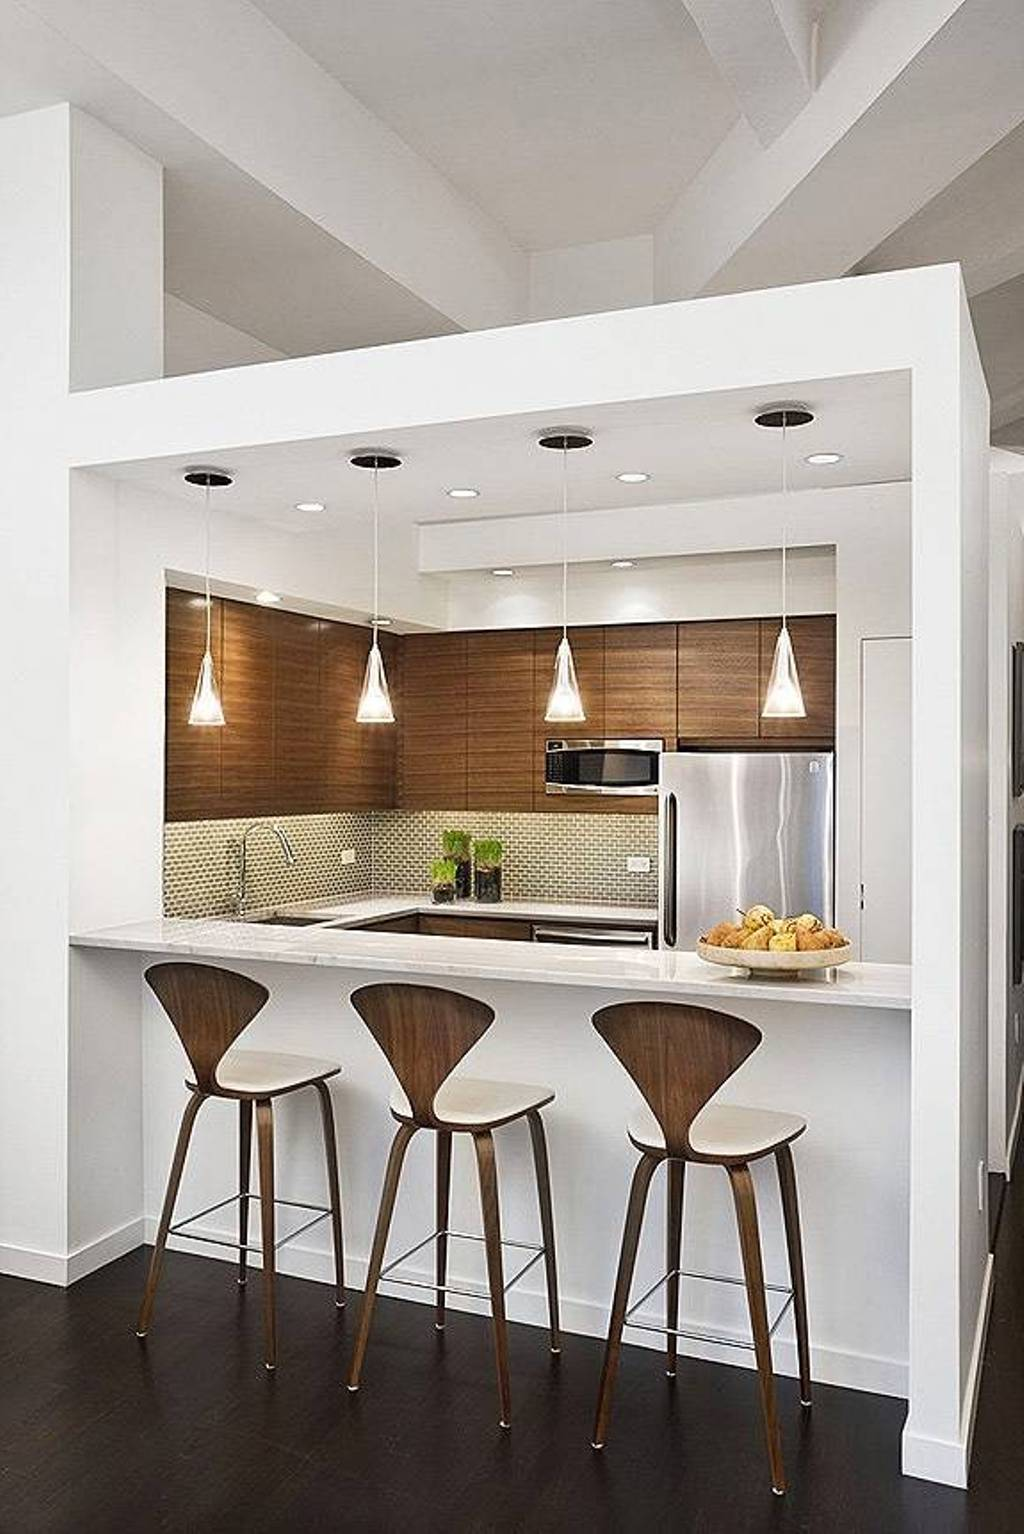 small kitchens designs ideas pictures 25 modern small kitchen design ideas 8109